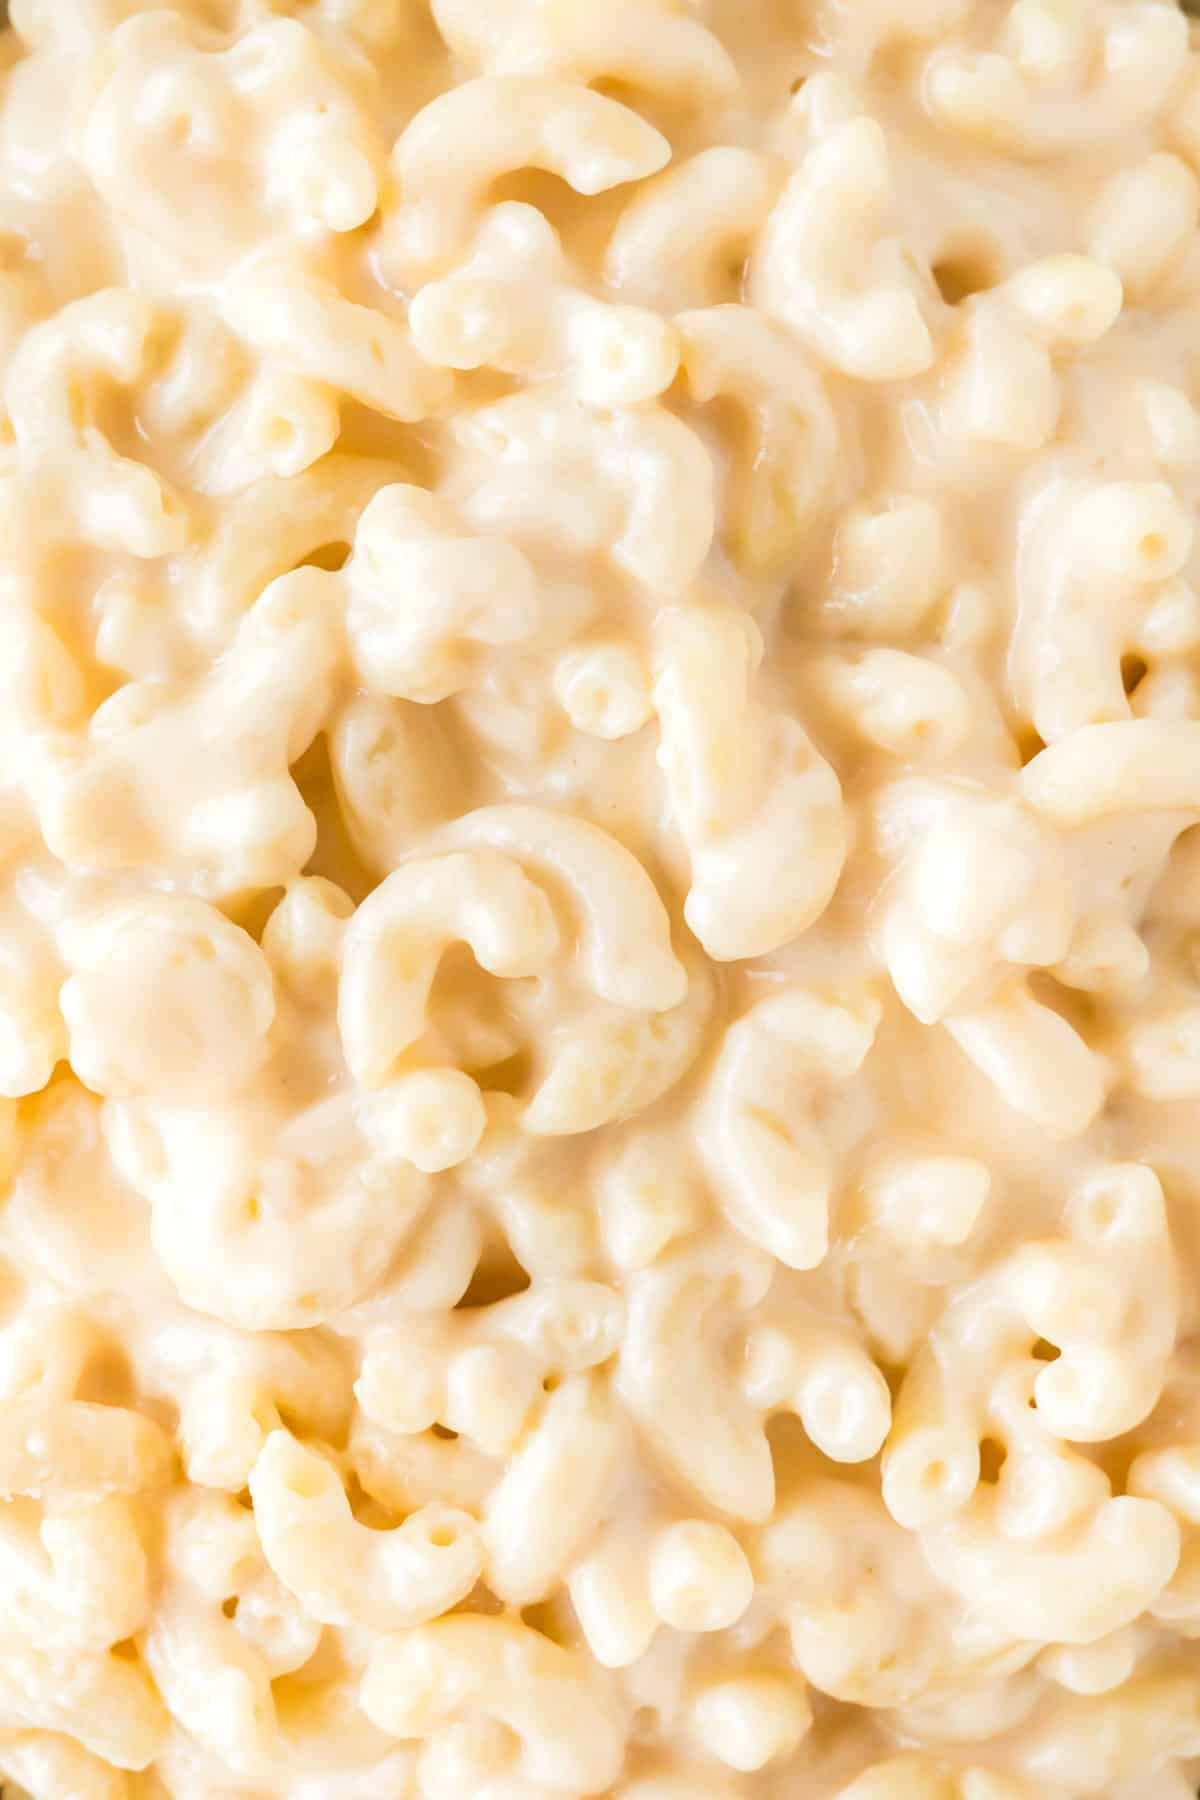 up close image showing the creaminess of the greek yogurt mac and cheese